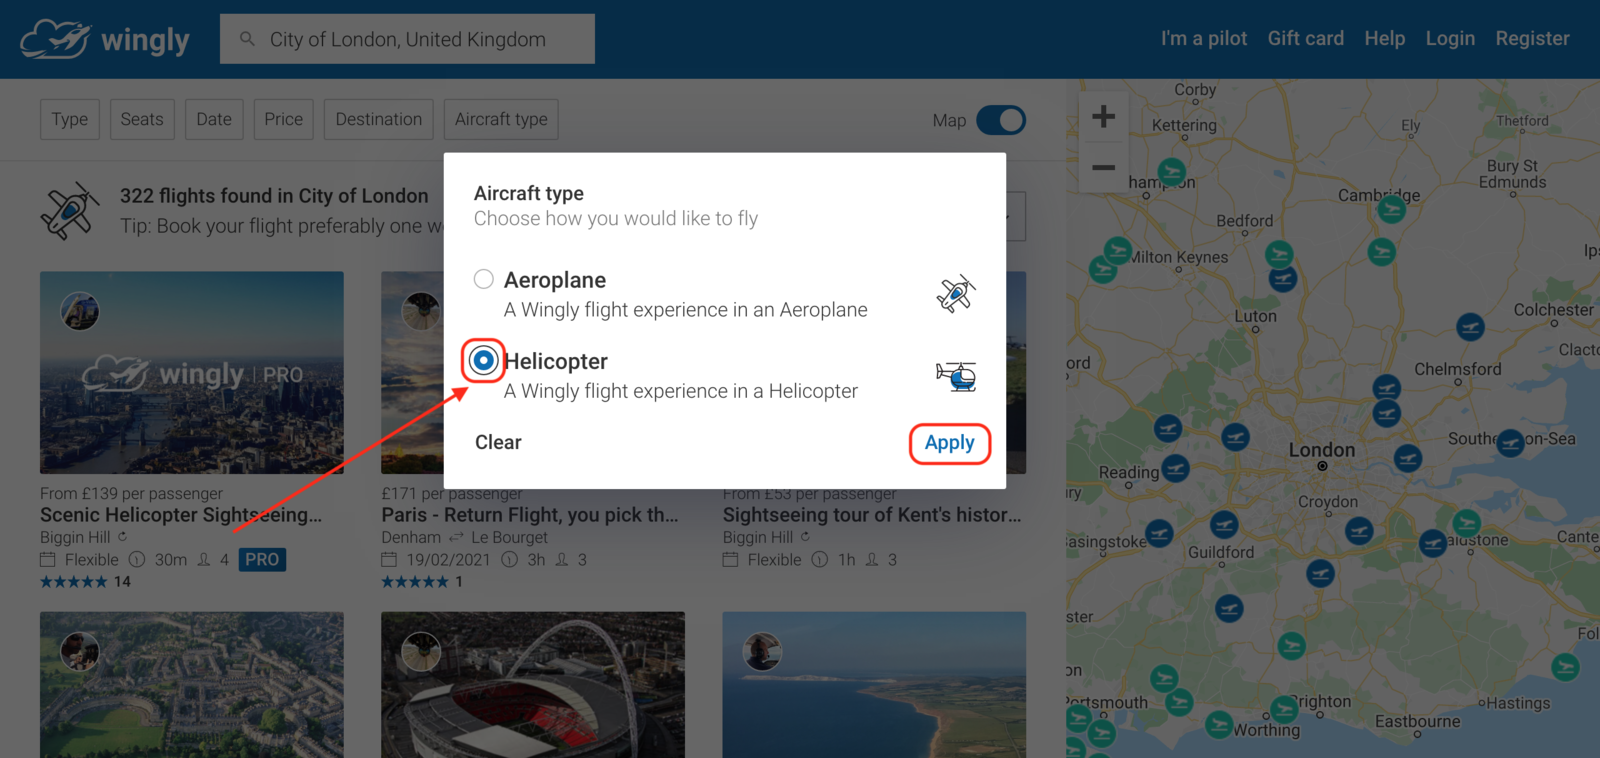 You can choose to filter to either just helicopter or just plane flights